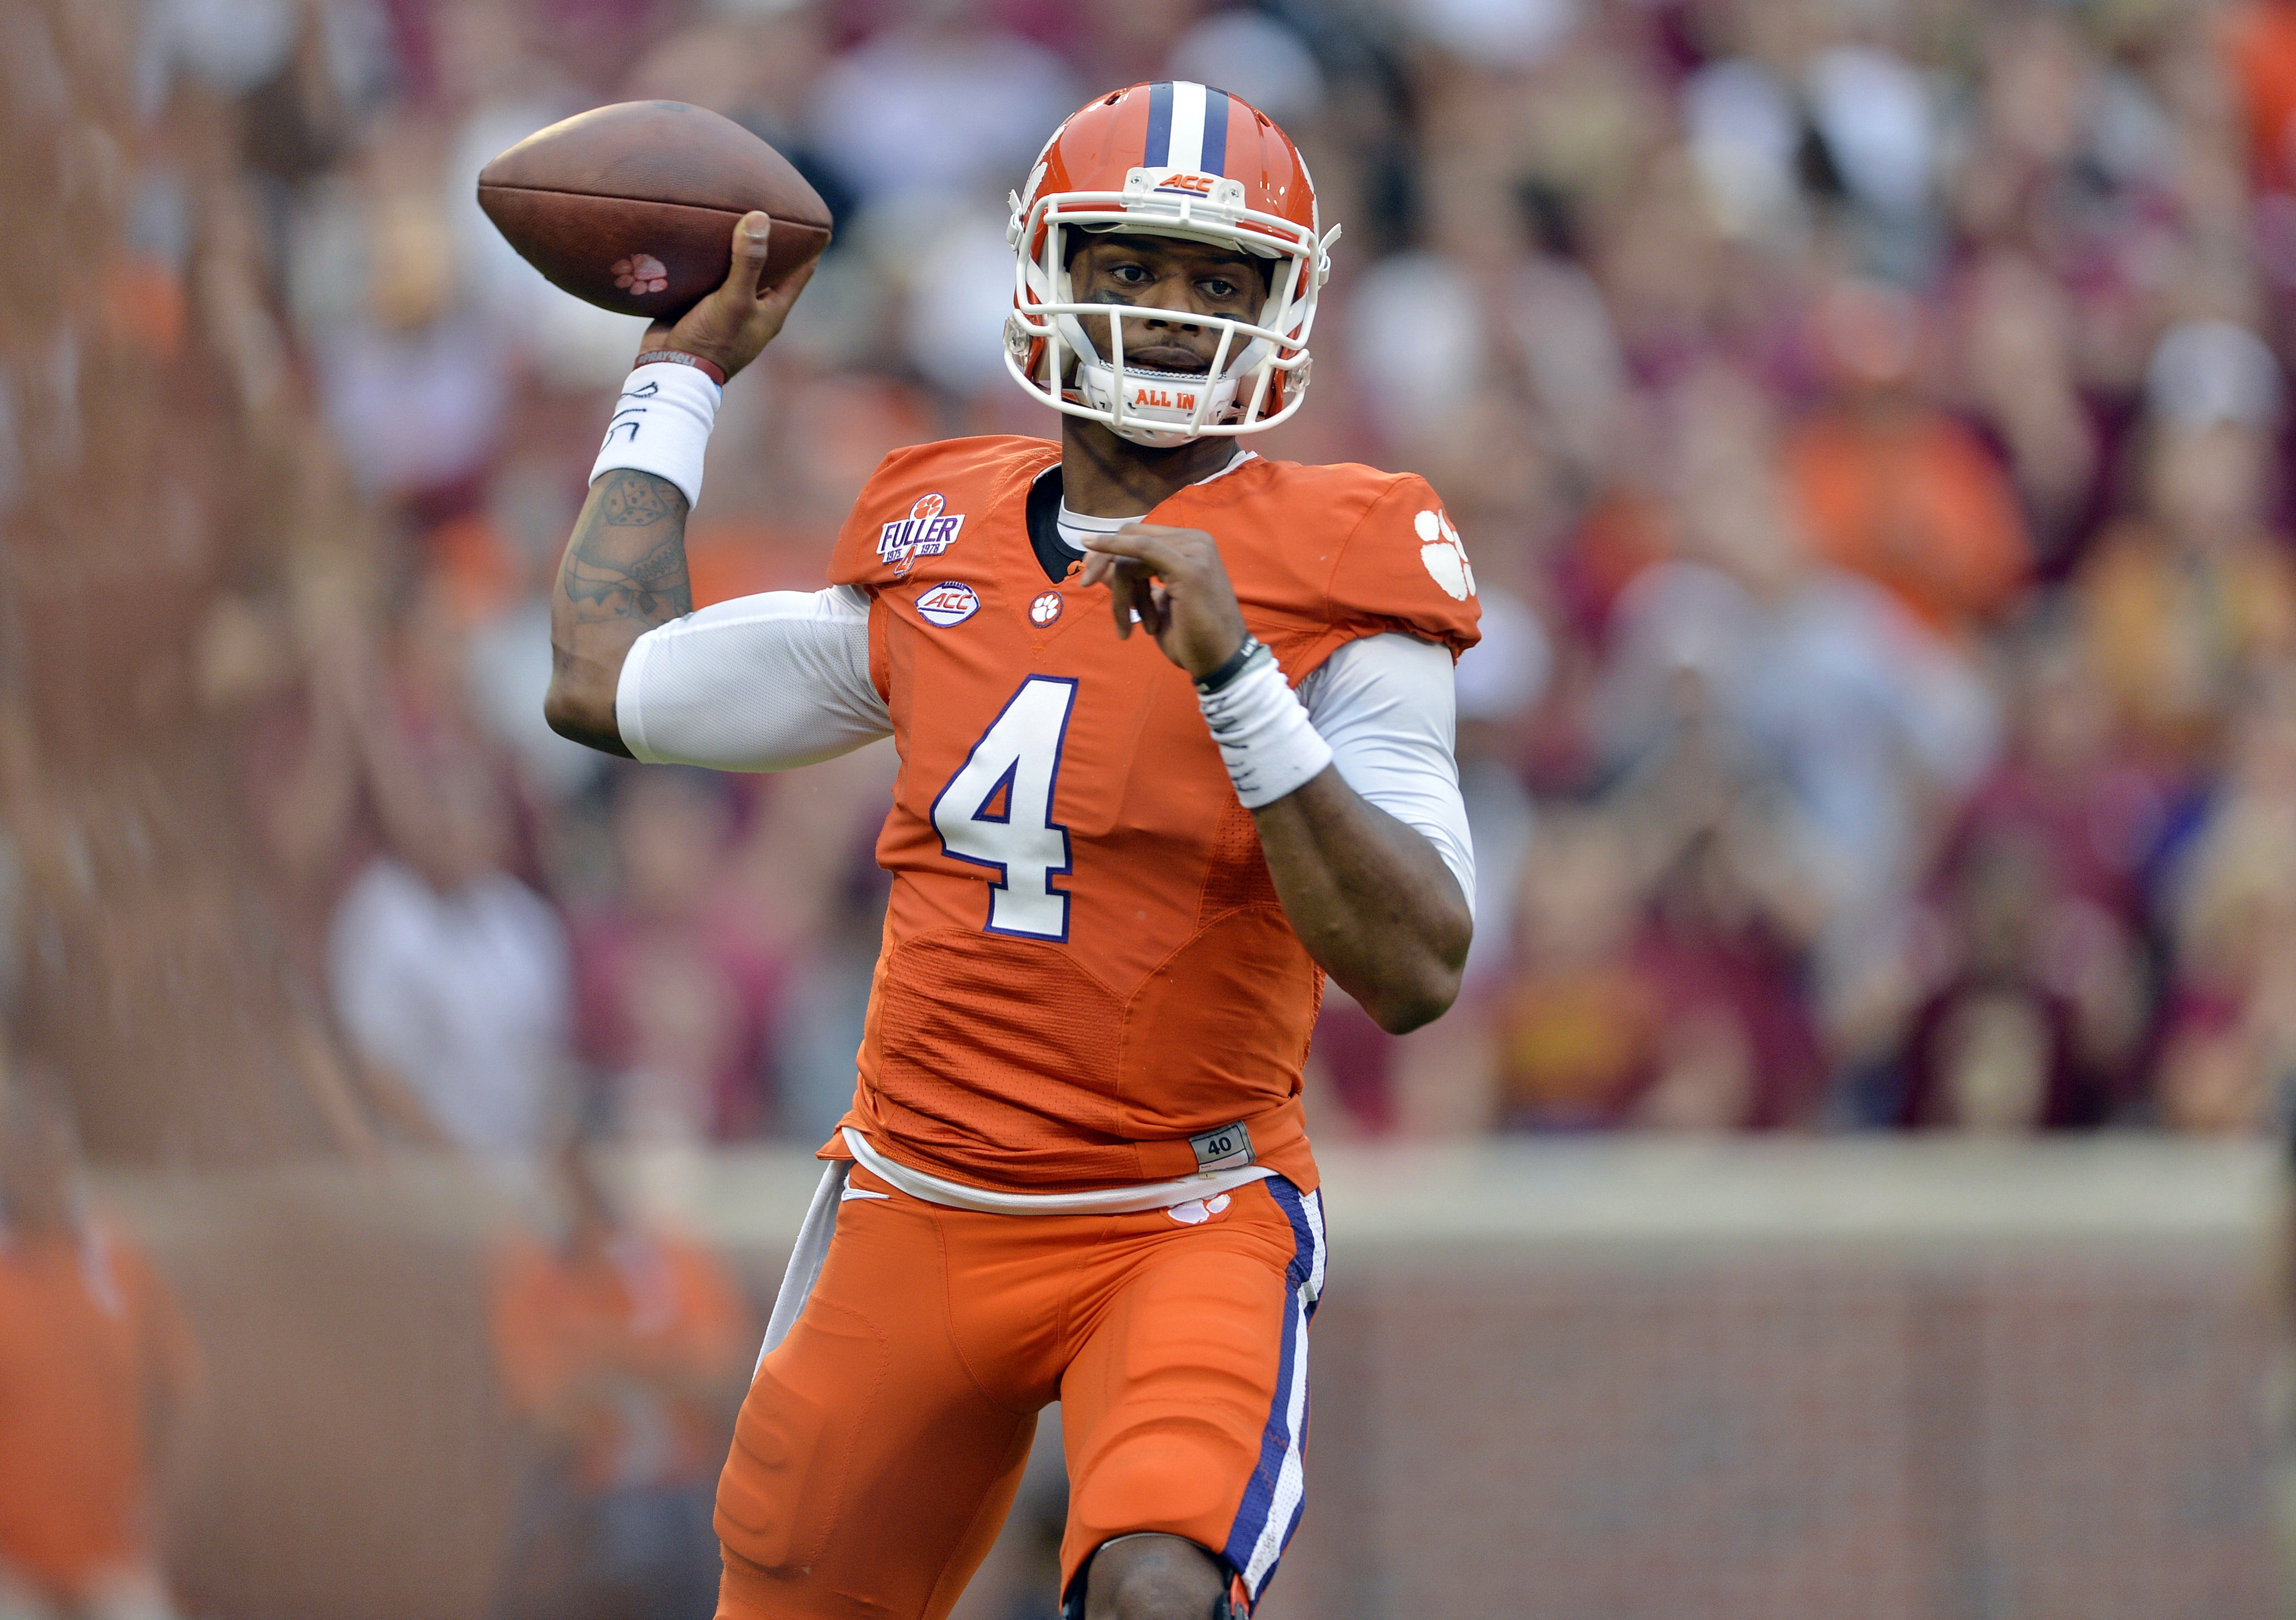 FILE - In this Nov. 7, 2015, file photo, Clemson quarterback Deshaun Watson throws a pass during the first half of an NCAA college football game against Florida State in Clemson, S.C. In the year of the running back, Watson is making a late push to keep t